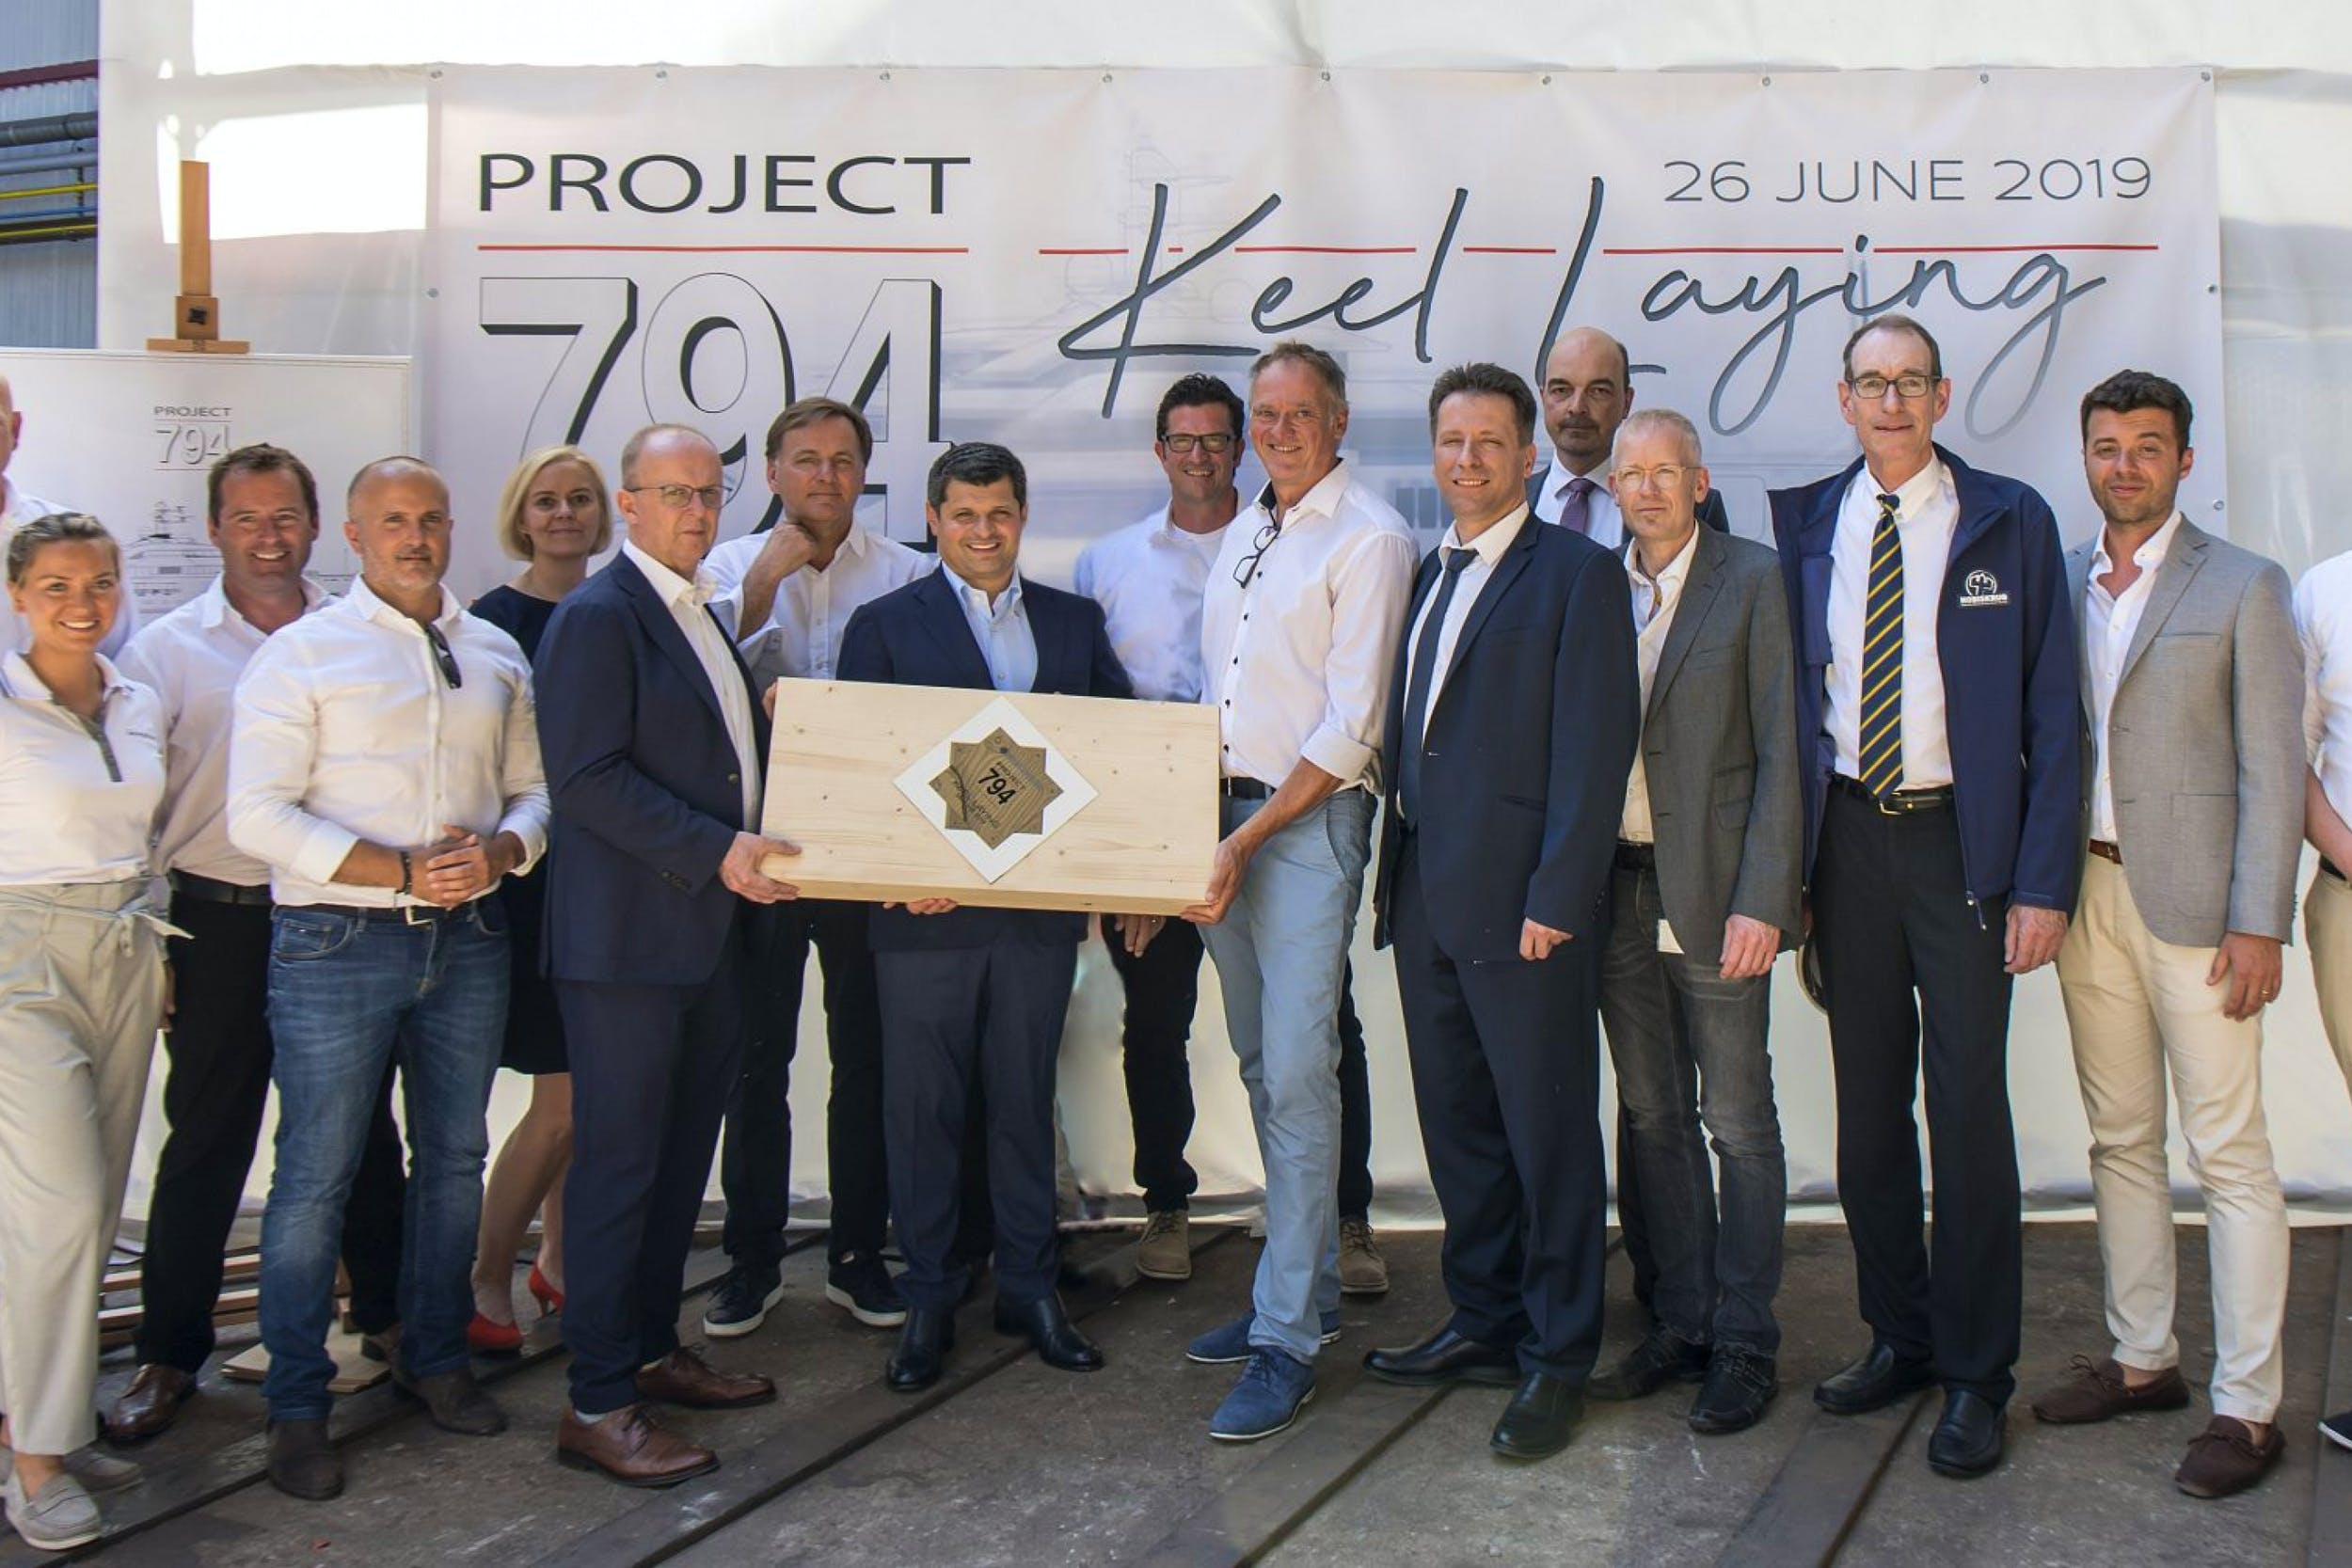 PROJECT 794 ON TRACK FOR DELIVERY IN 2021